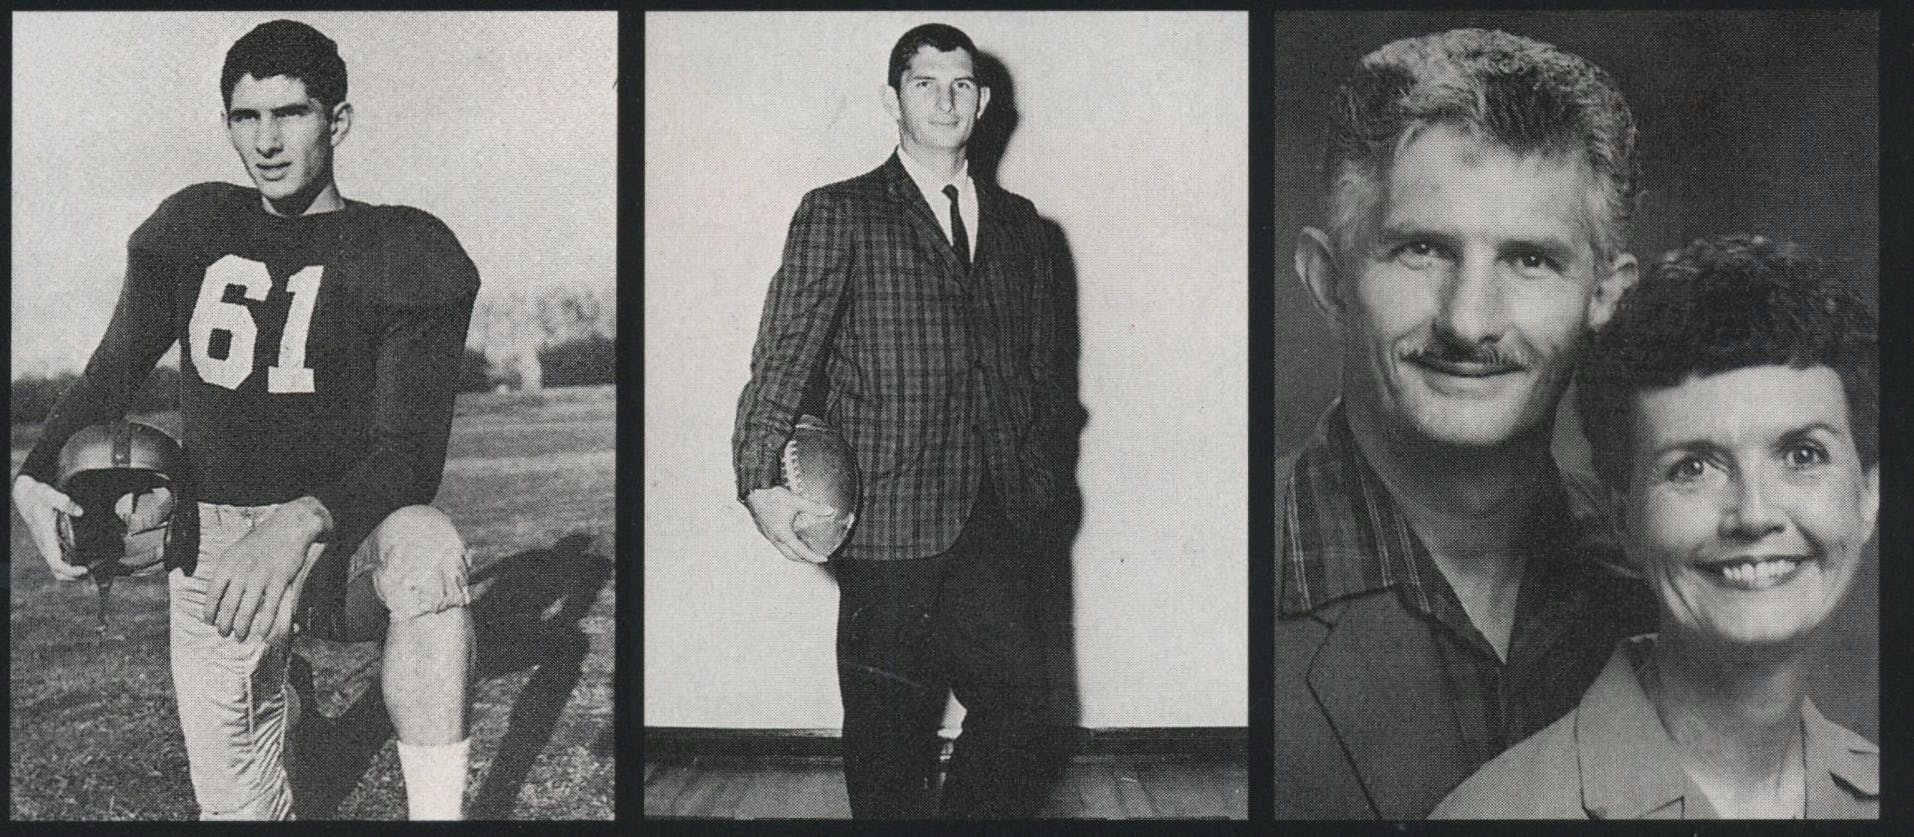 From left: At Arkansas State Teacher's College, Charlie was a great prankster and a star football player. At Crandall High School, he was everyone's favorite science teacher and football coach. And he was a model boyfriend for his last love, Dixie Austin.